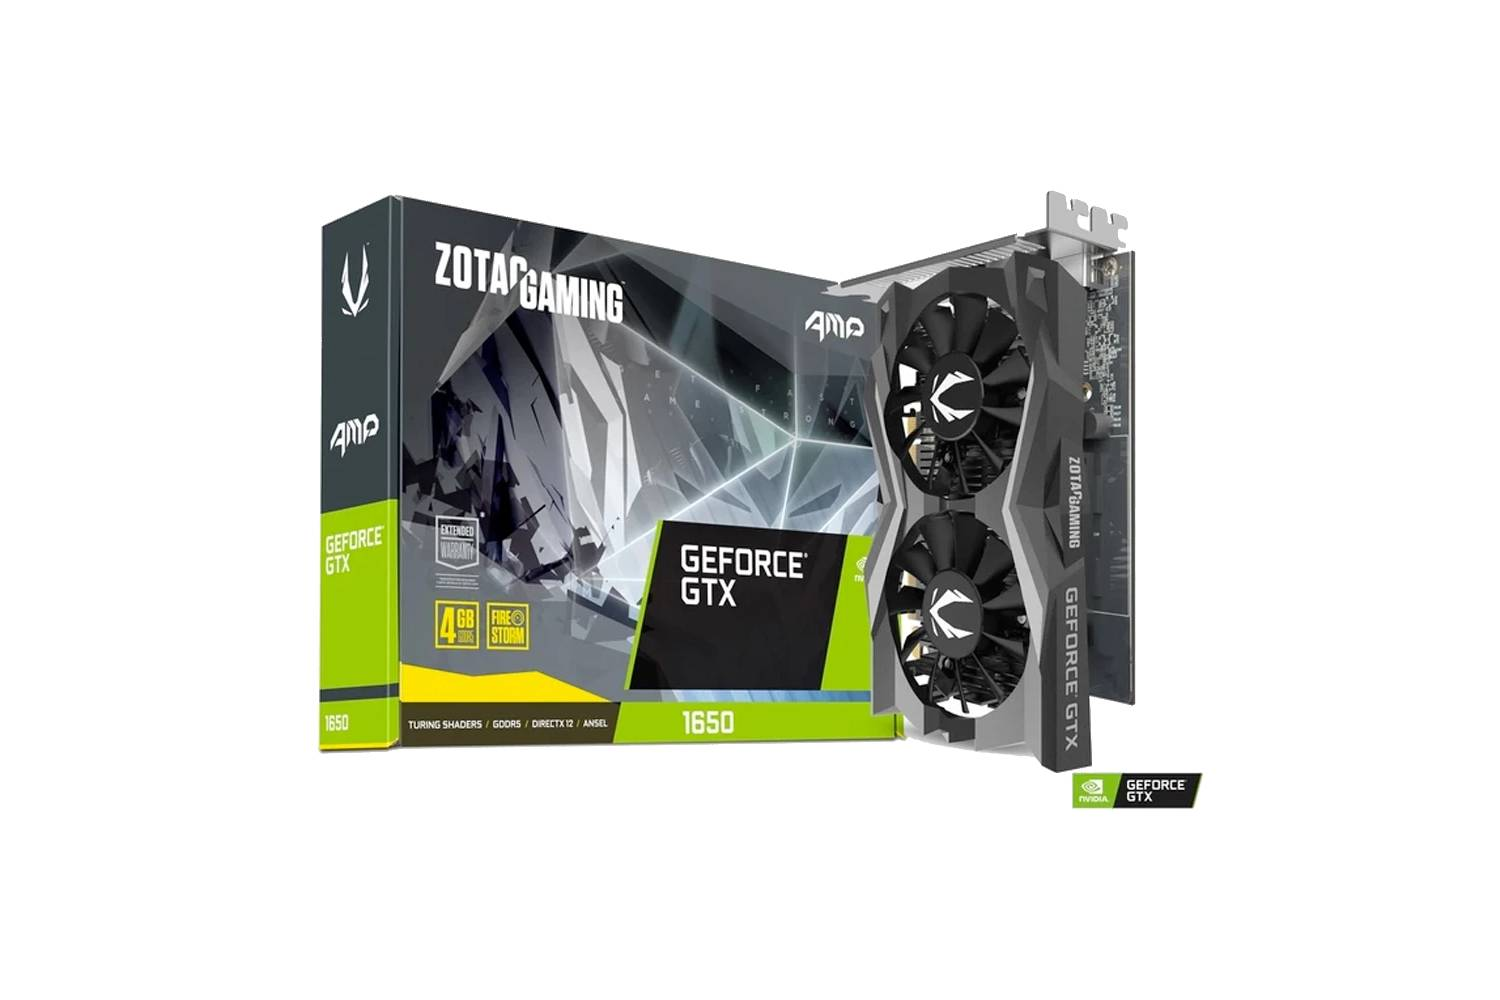 ZOTAC GeForce GTX 1650 AMP Edition 4GB GDDR5 Graphics Card-computerspace